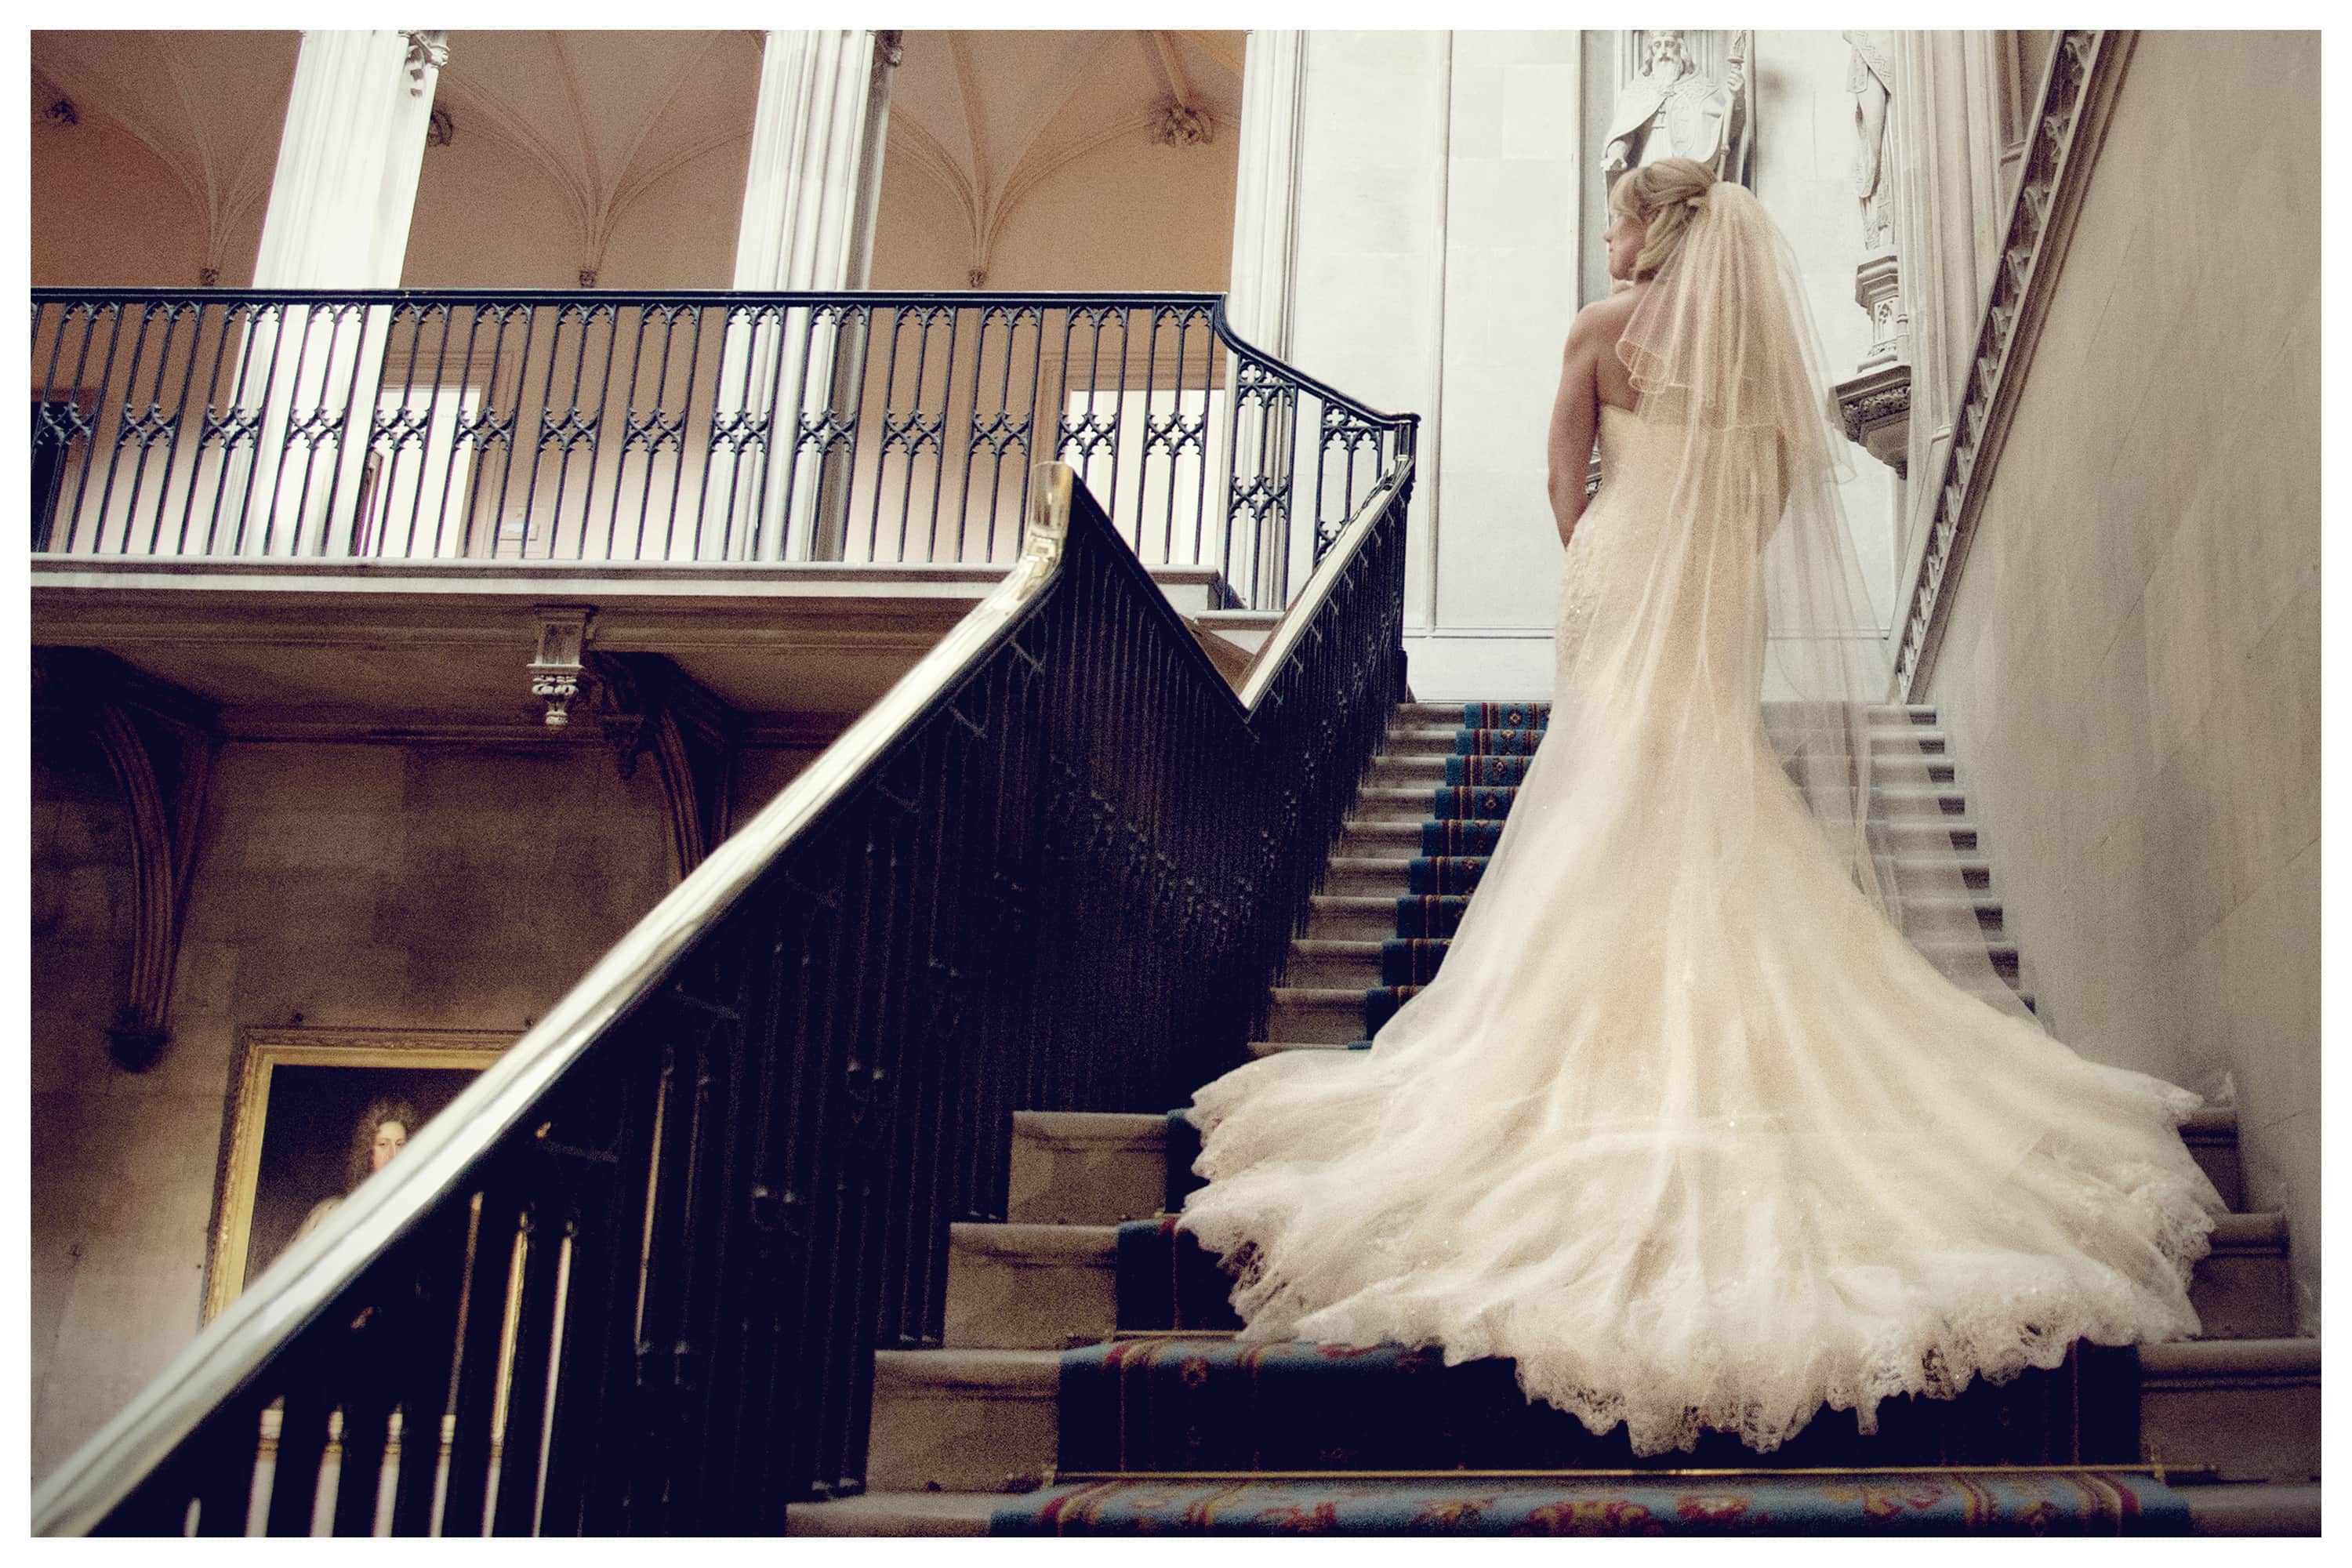 Bride on staircase at Ashridge House, Berkhamsted Hertfordshire - Wedding Photography